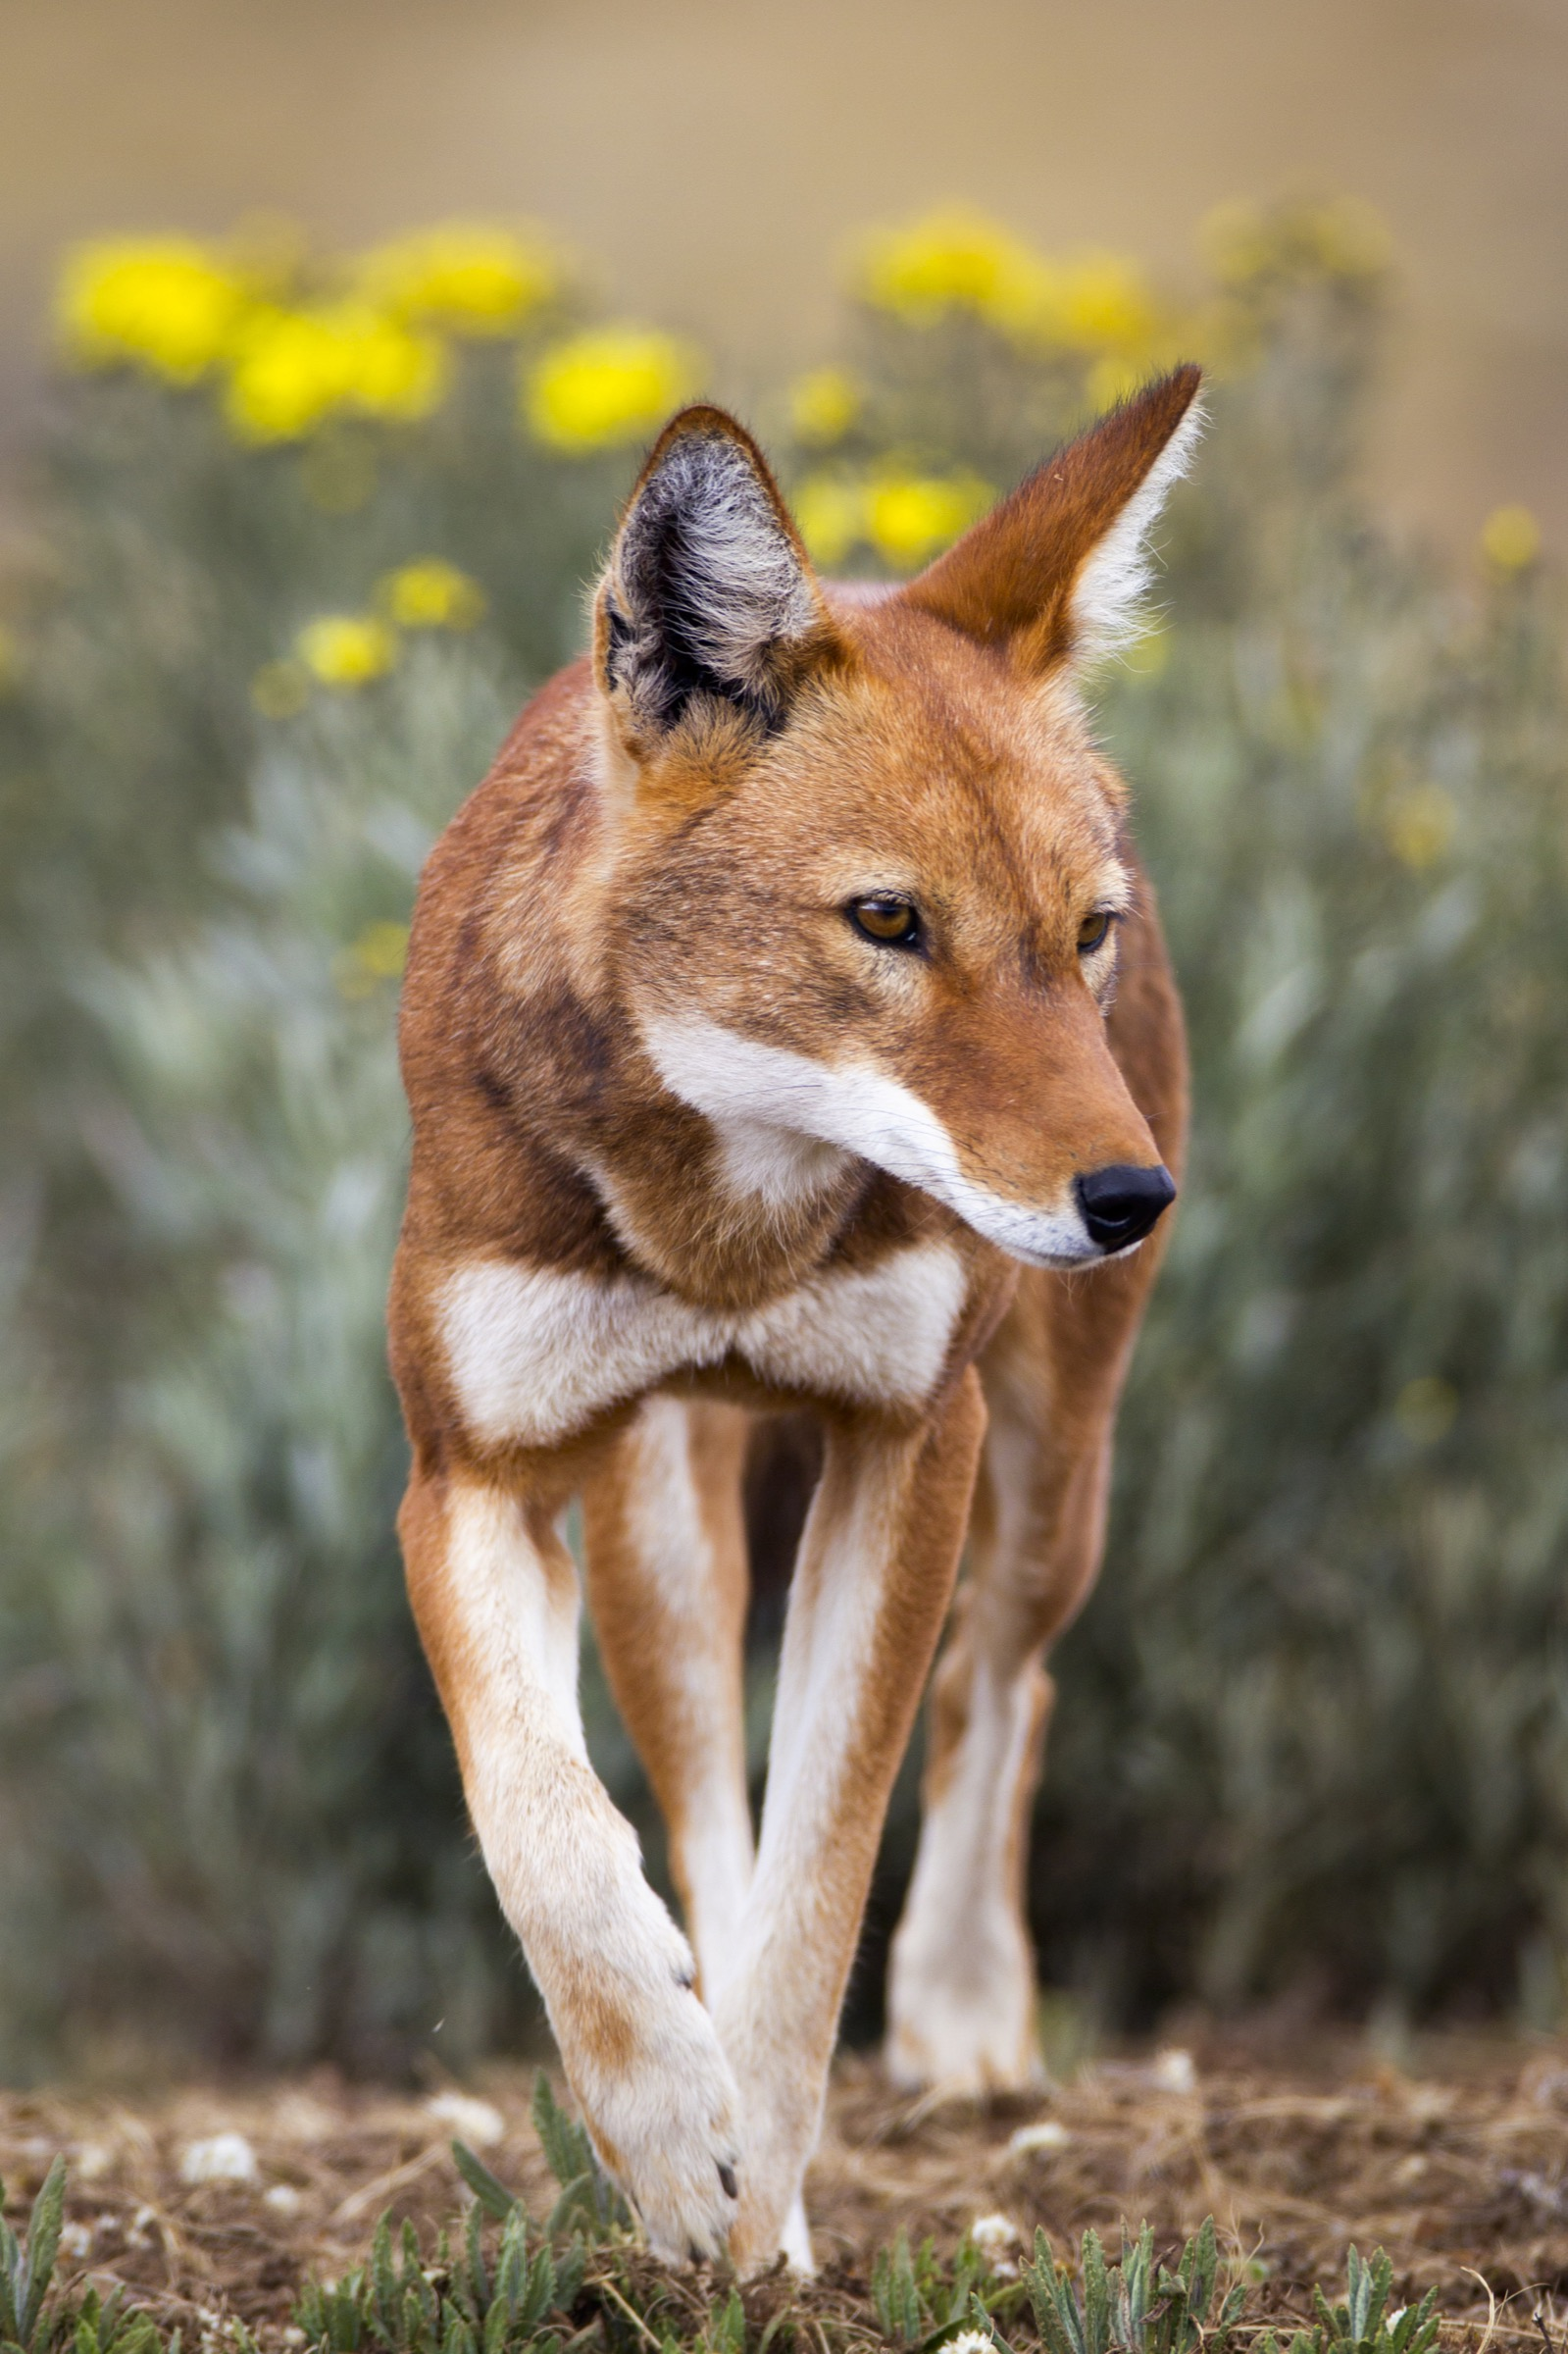 Descended from gray wolves, Ethiopian wolves have adapted to life in the Ethiopian Highlands.